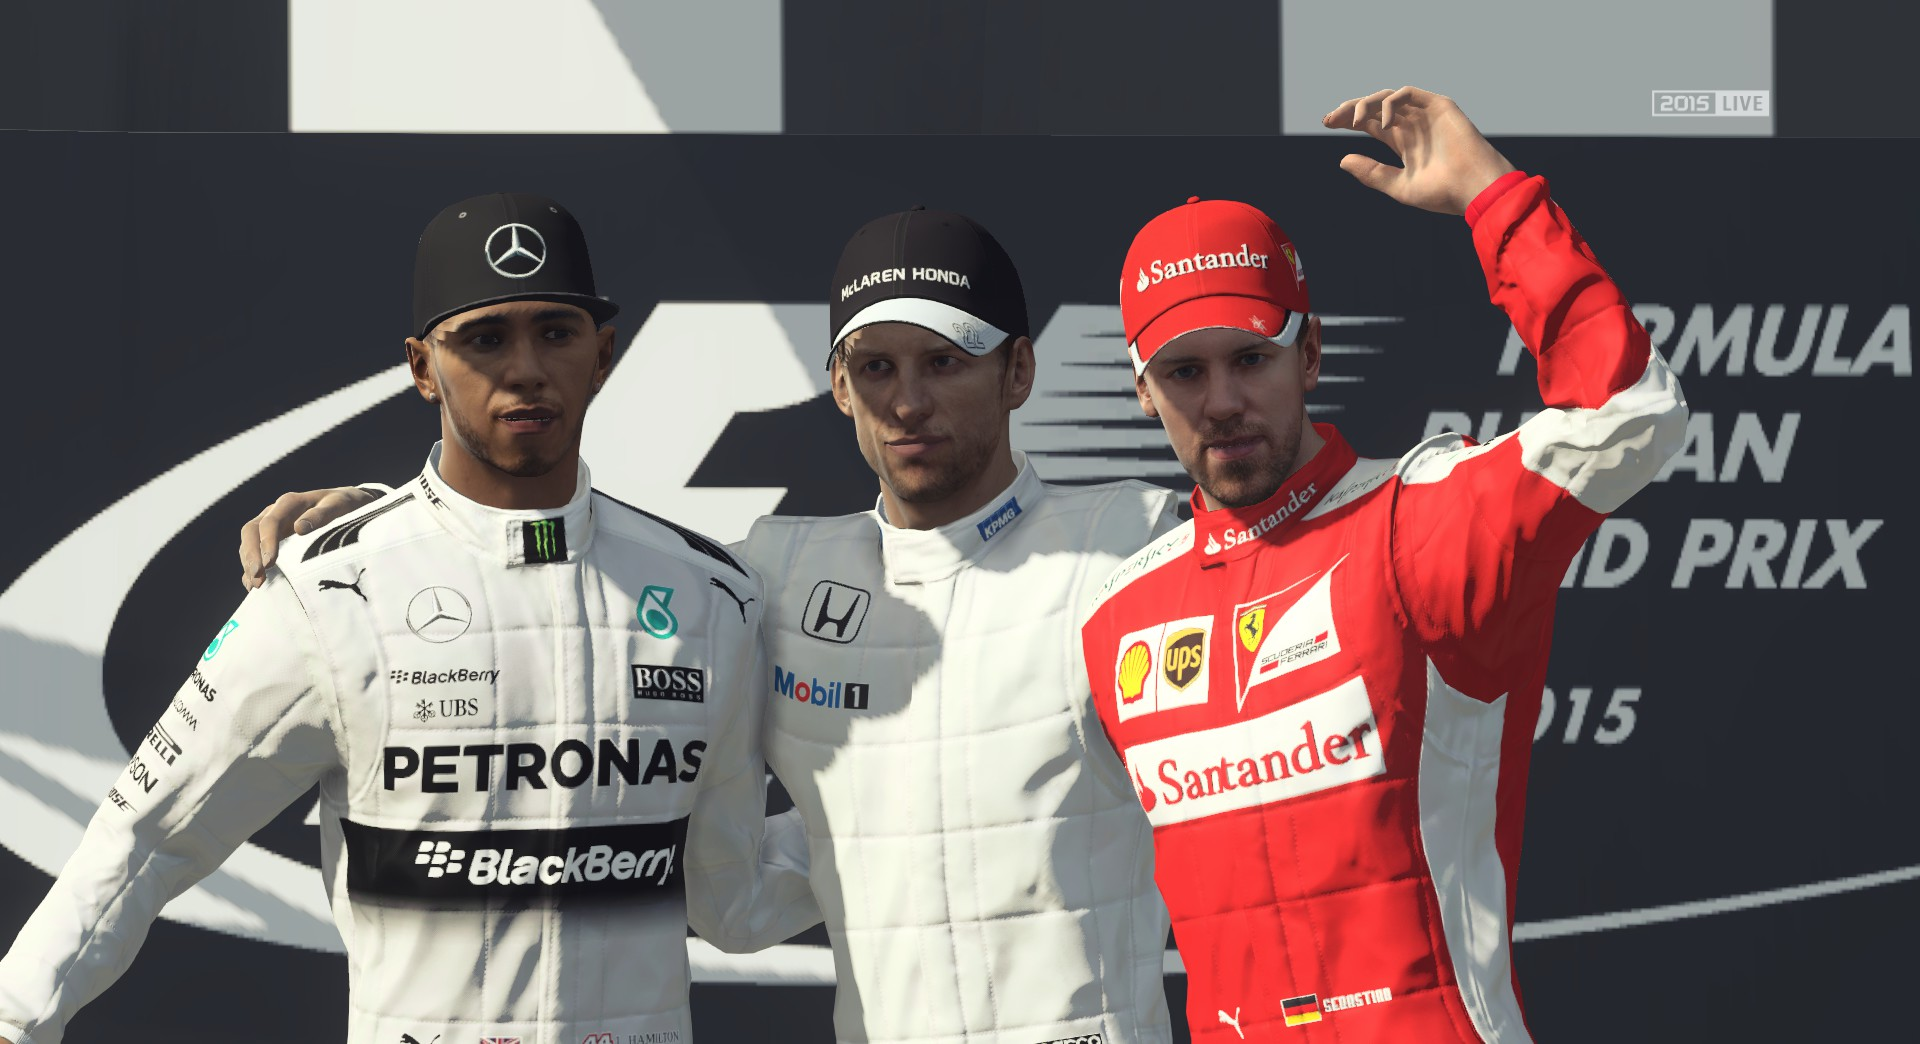 f1 2015 pc review darkzero in fact that is a representation of the sport that can be annoying i went driving as jenson button in the mclaren honda which let s face it